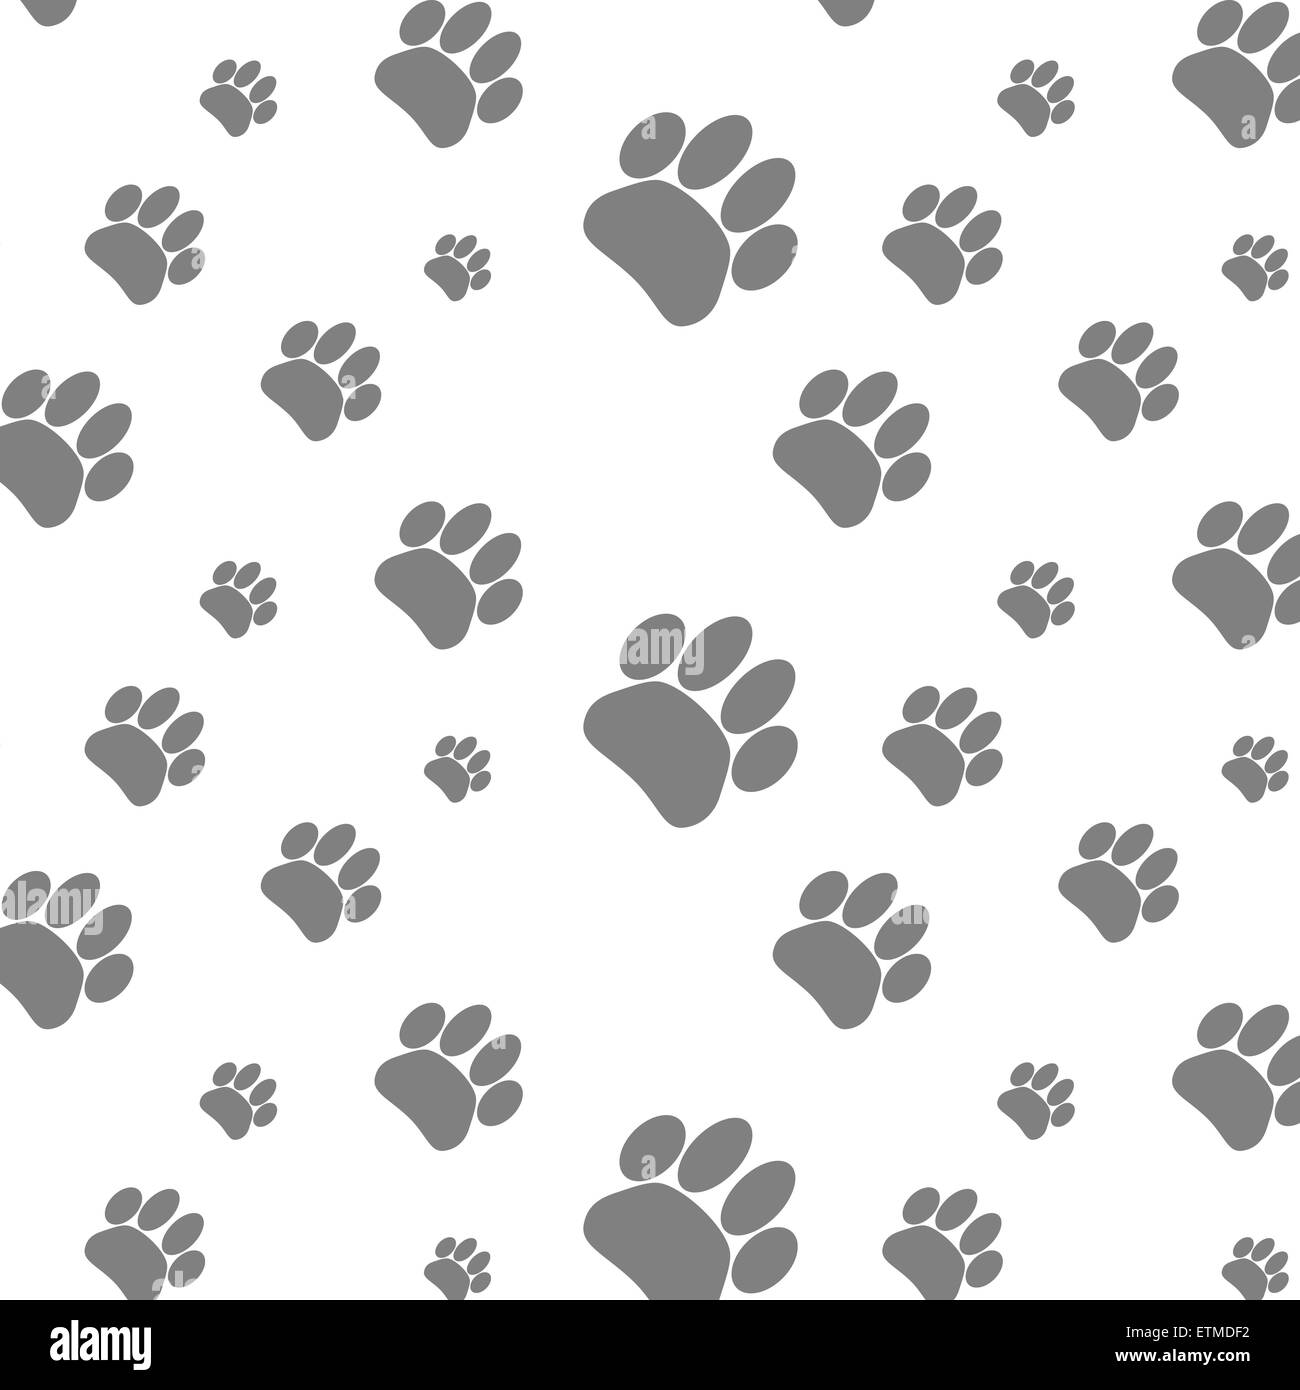 Seamless Patter Foot Print Dog Footprint Animal Background Paw Pet Wander Puppy Vector Graphic Illustration